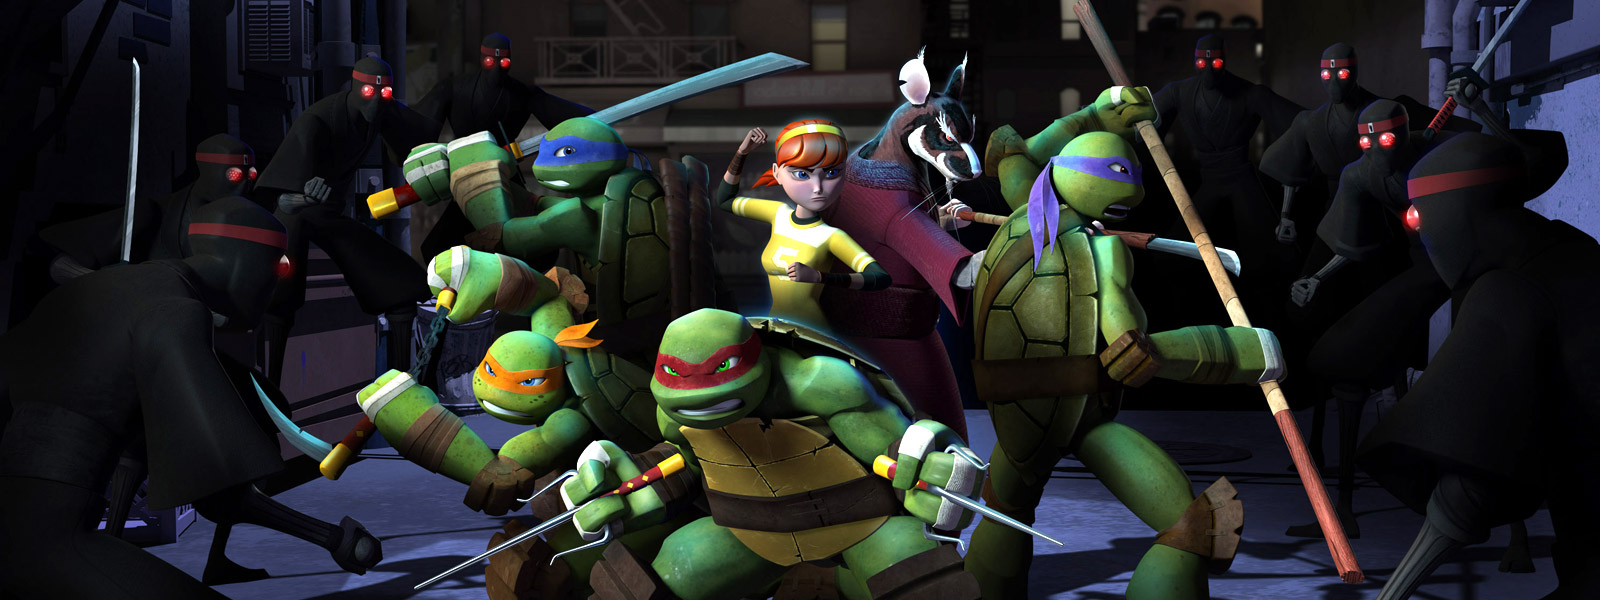 art - Nickelodeon's Teenage Mutant Ninja Turtles